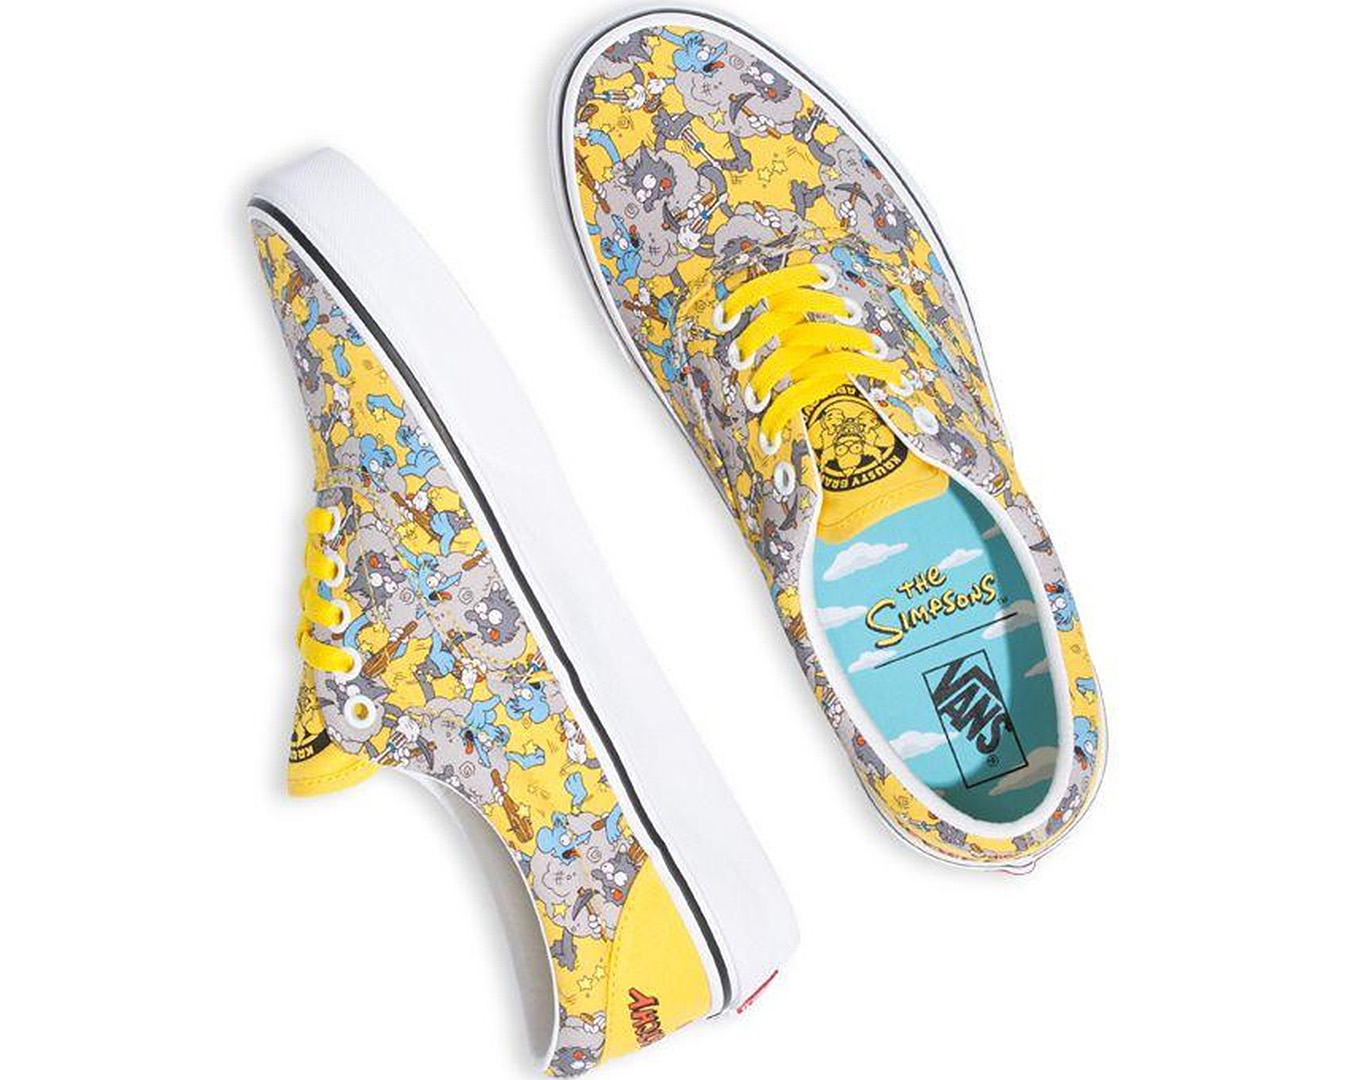 Itchy and Scratchy characters feature on these Vans Era collabs.